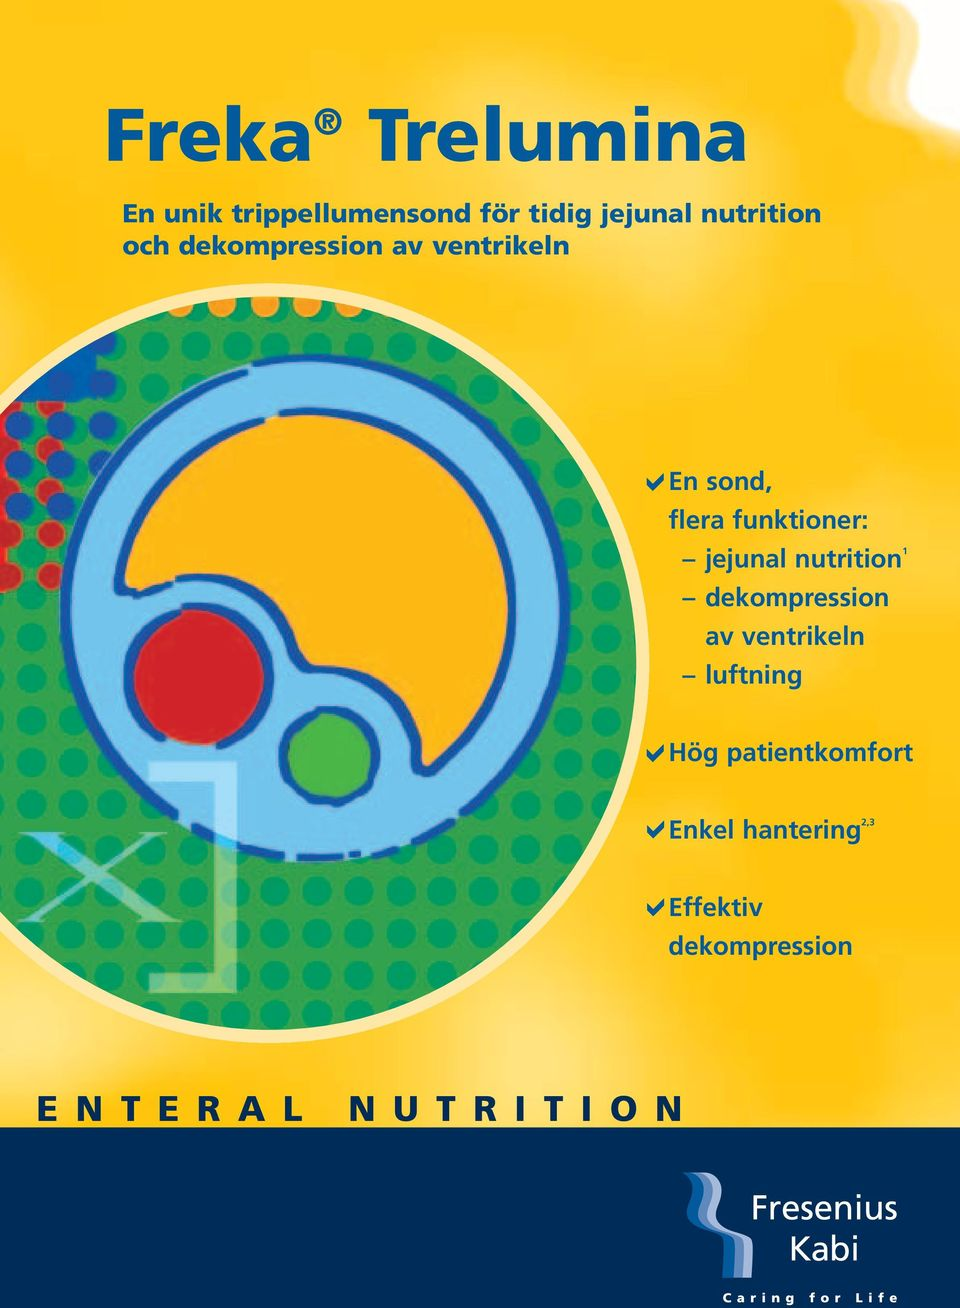 funktioner: jejunal nutrition 1 dekompression av ventrikeln